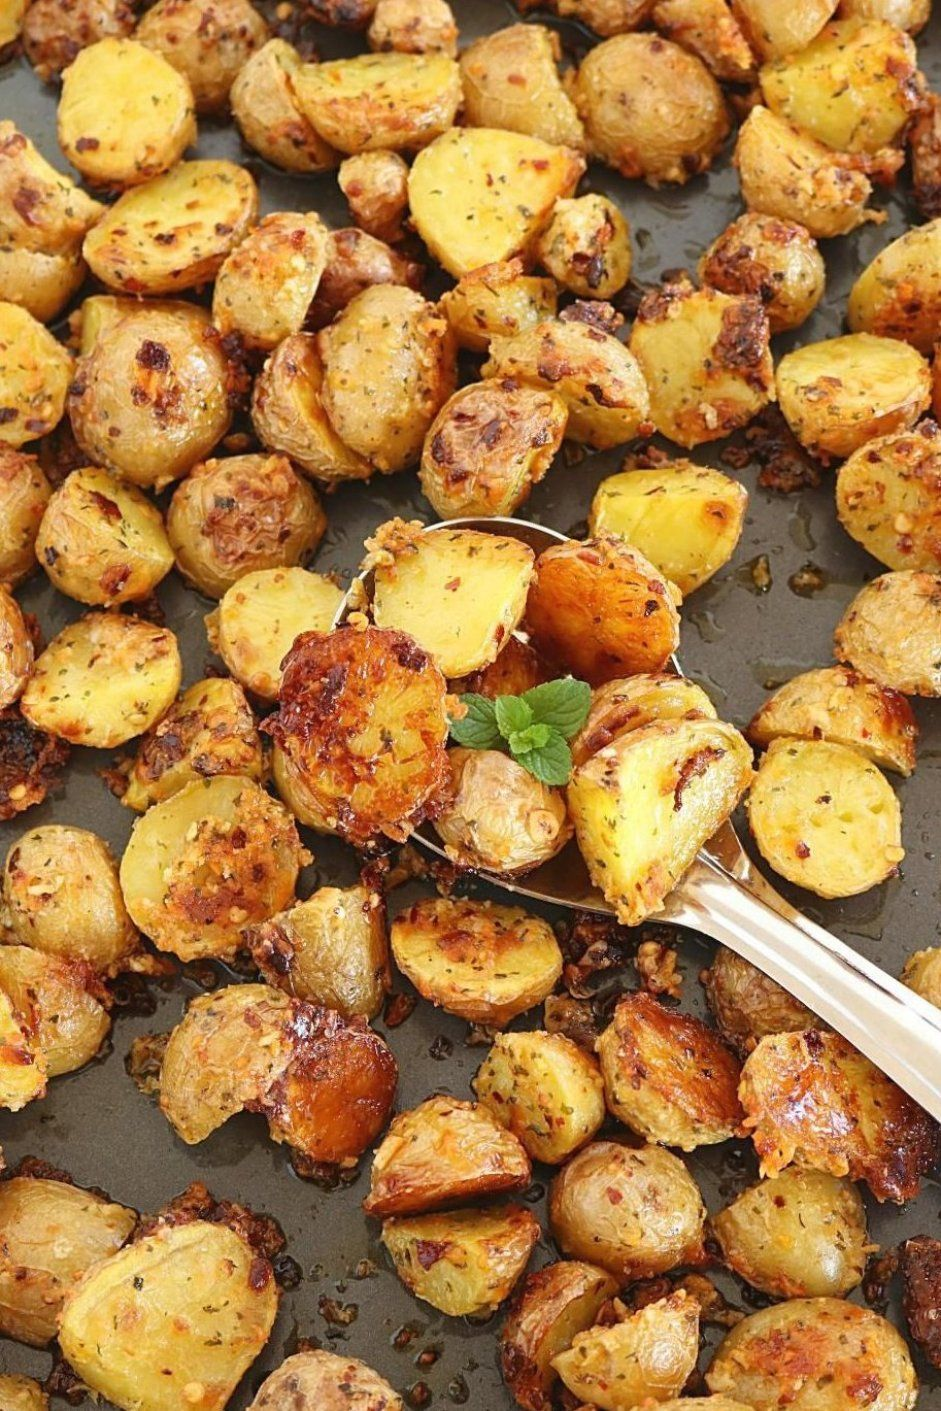 Oven Roasted Potatoes Crispy Oven Roasted Potatoes How To Bake Baby Potatoes In Olive Oil In 2020 Gold Potato Recipes Baked Red Potatoes Baked Baby Potatoes